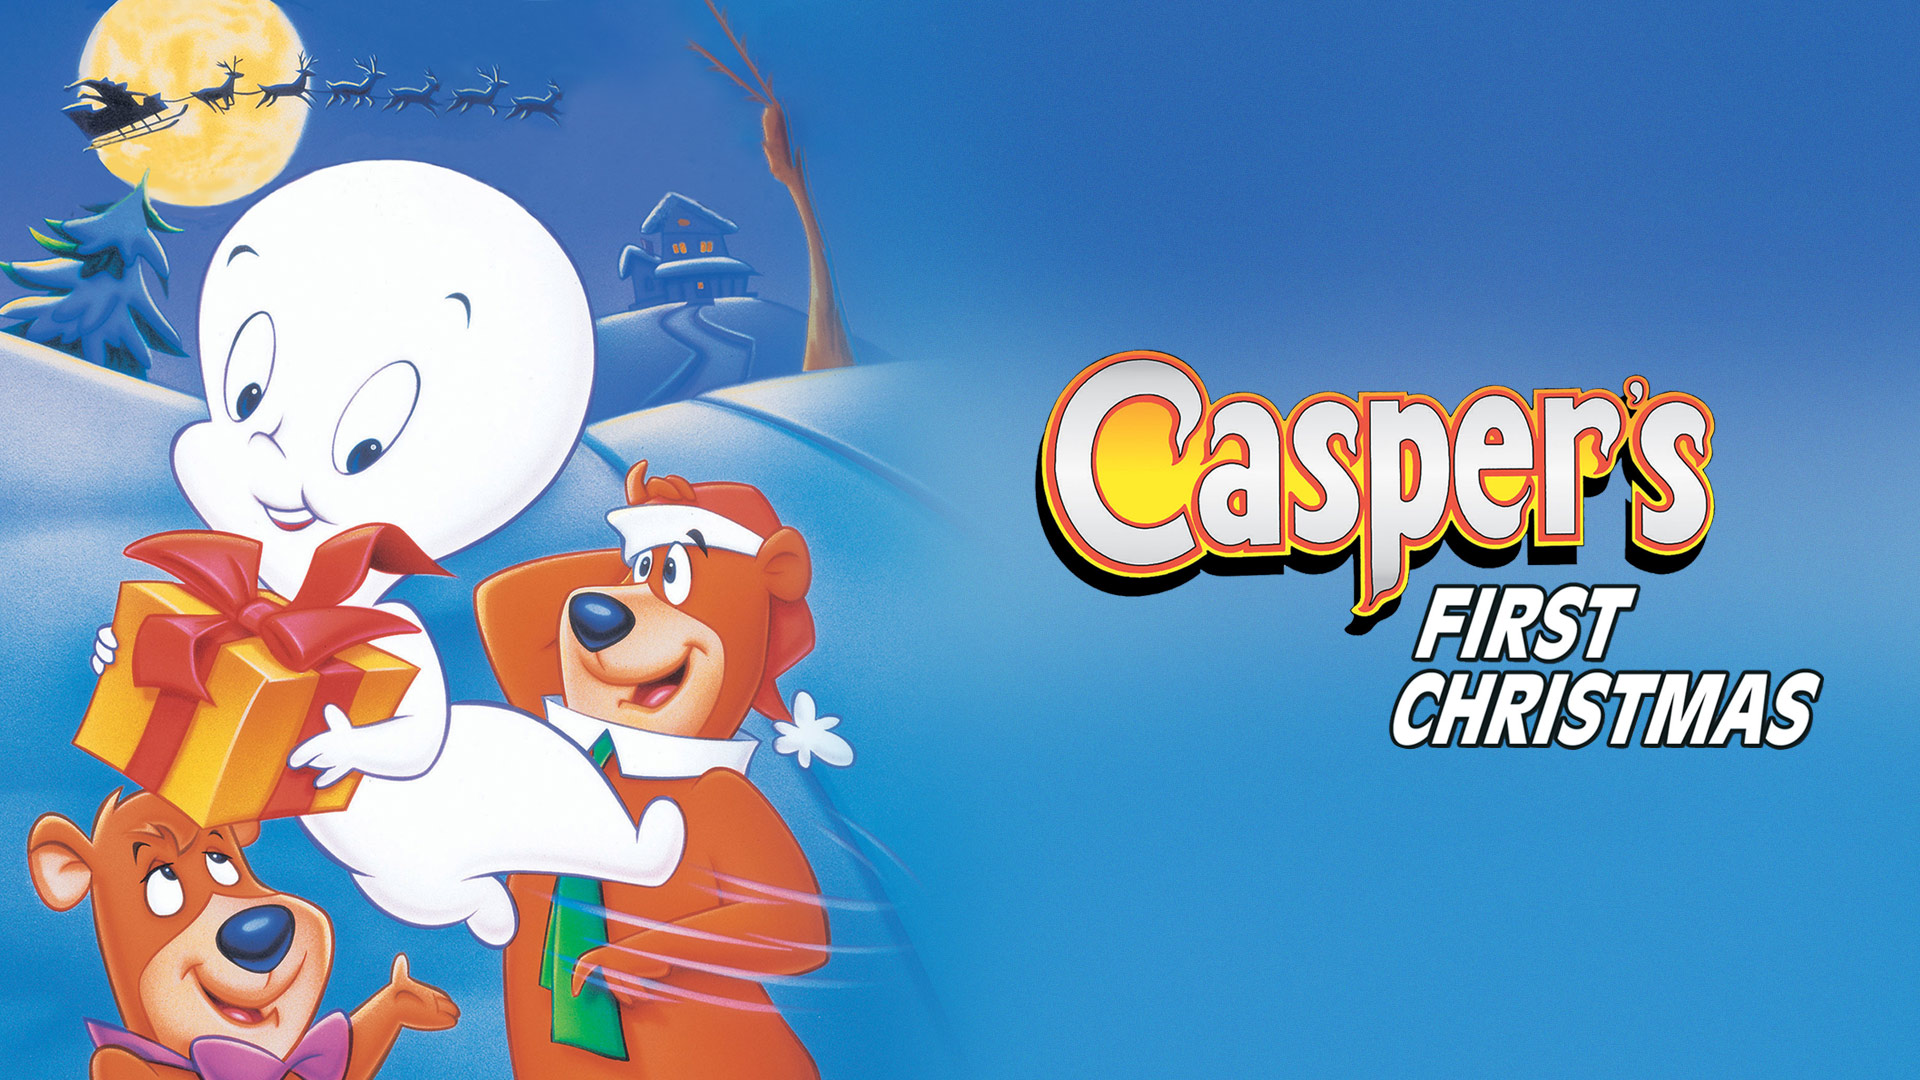 Caspers_haunted_christmasanne 28 online, free games to play